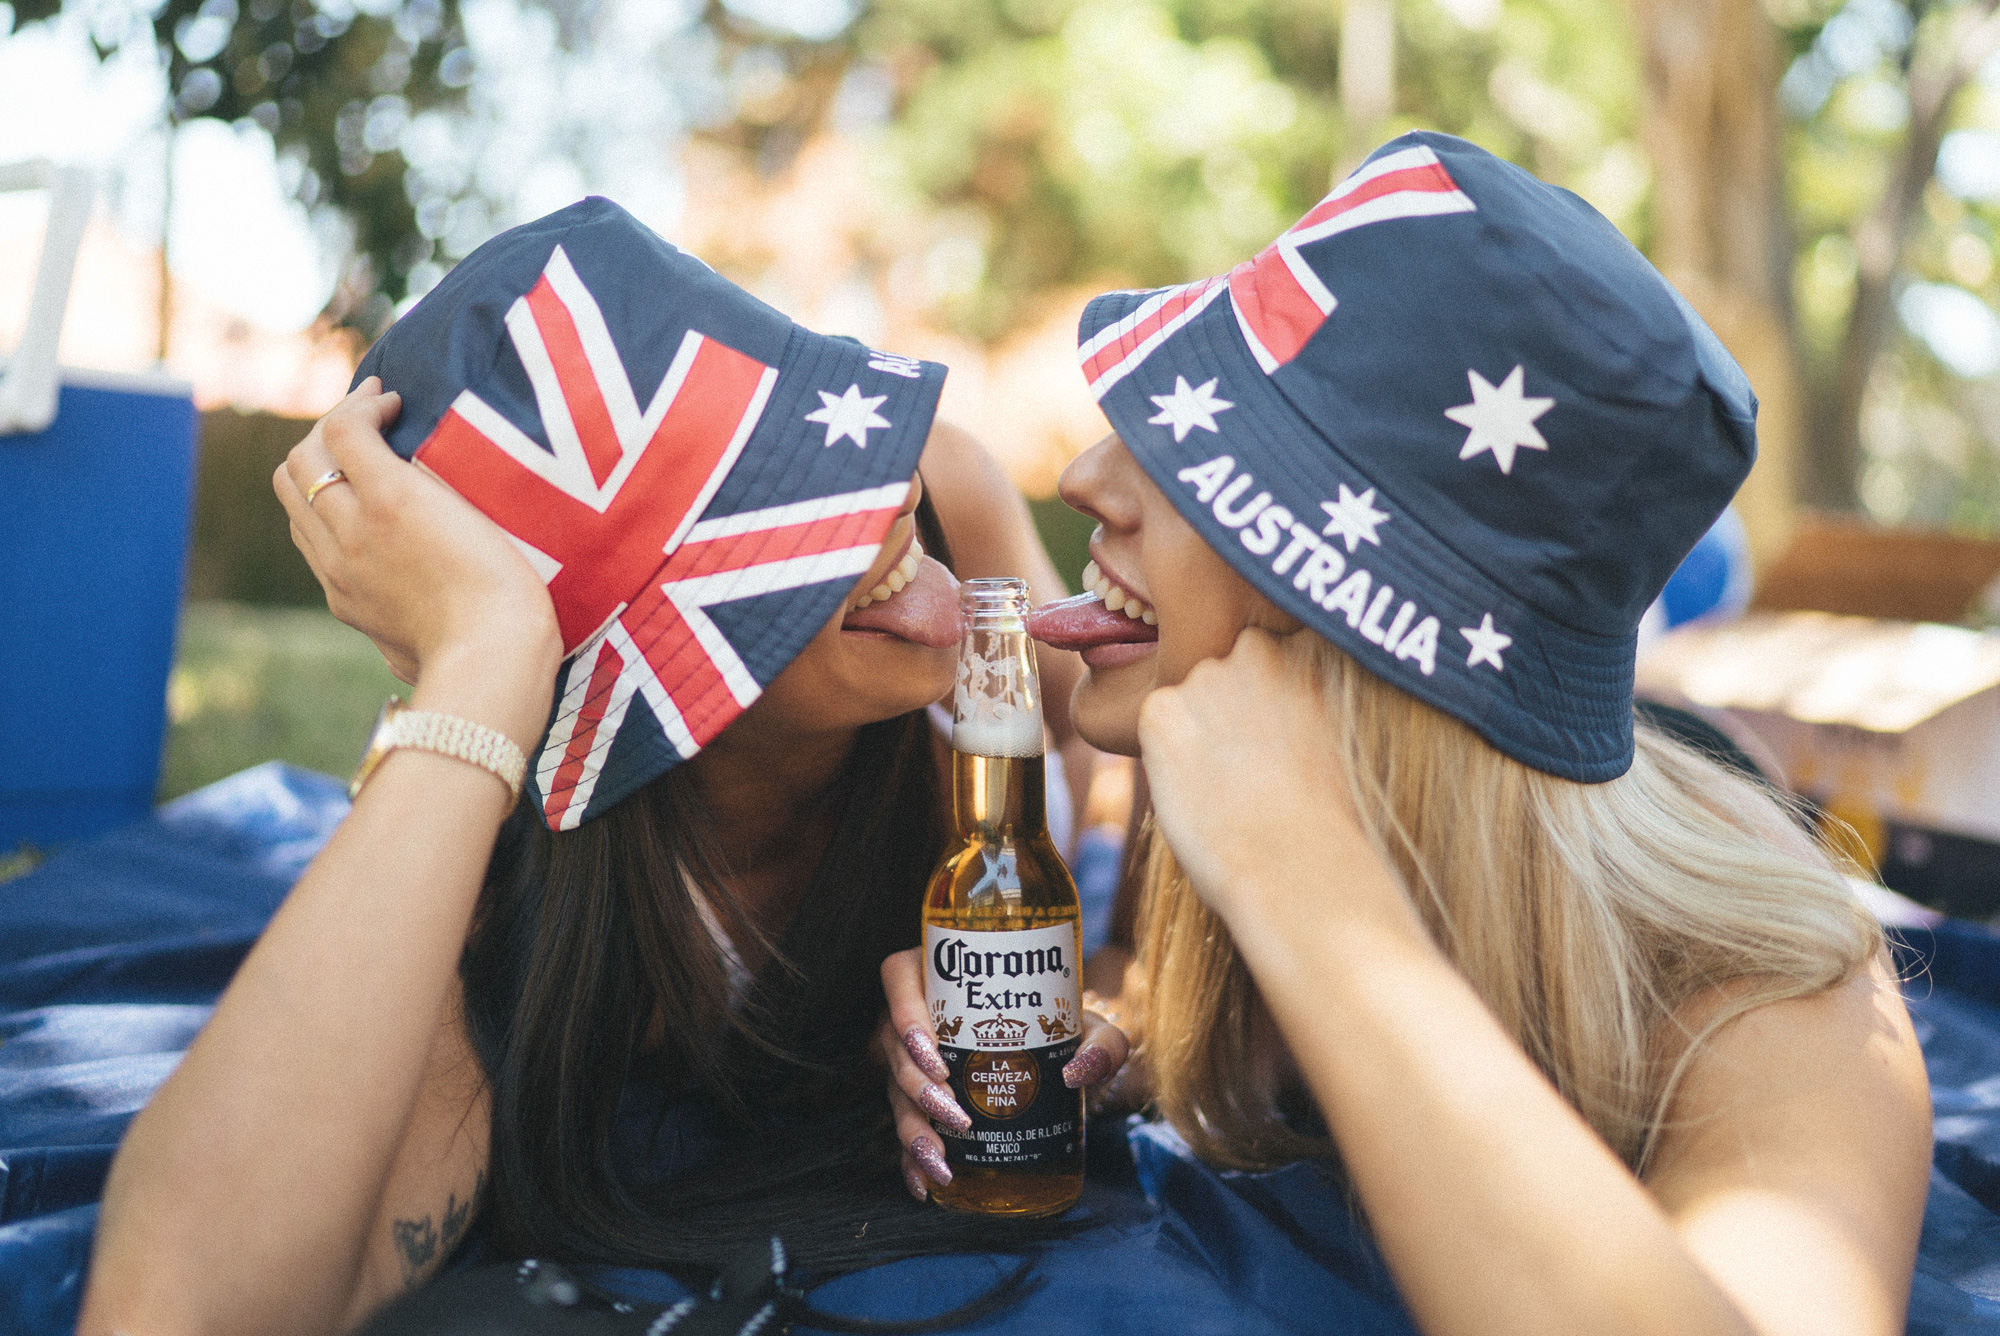 australiaday_babes_garden_shoot_justinfox_bottle_6